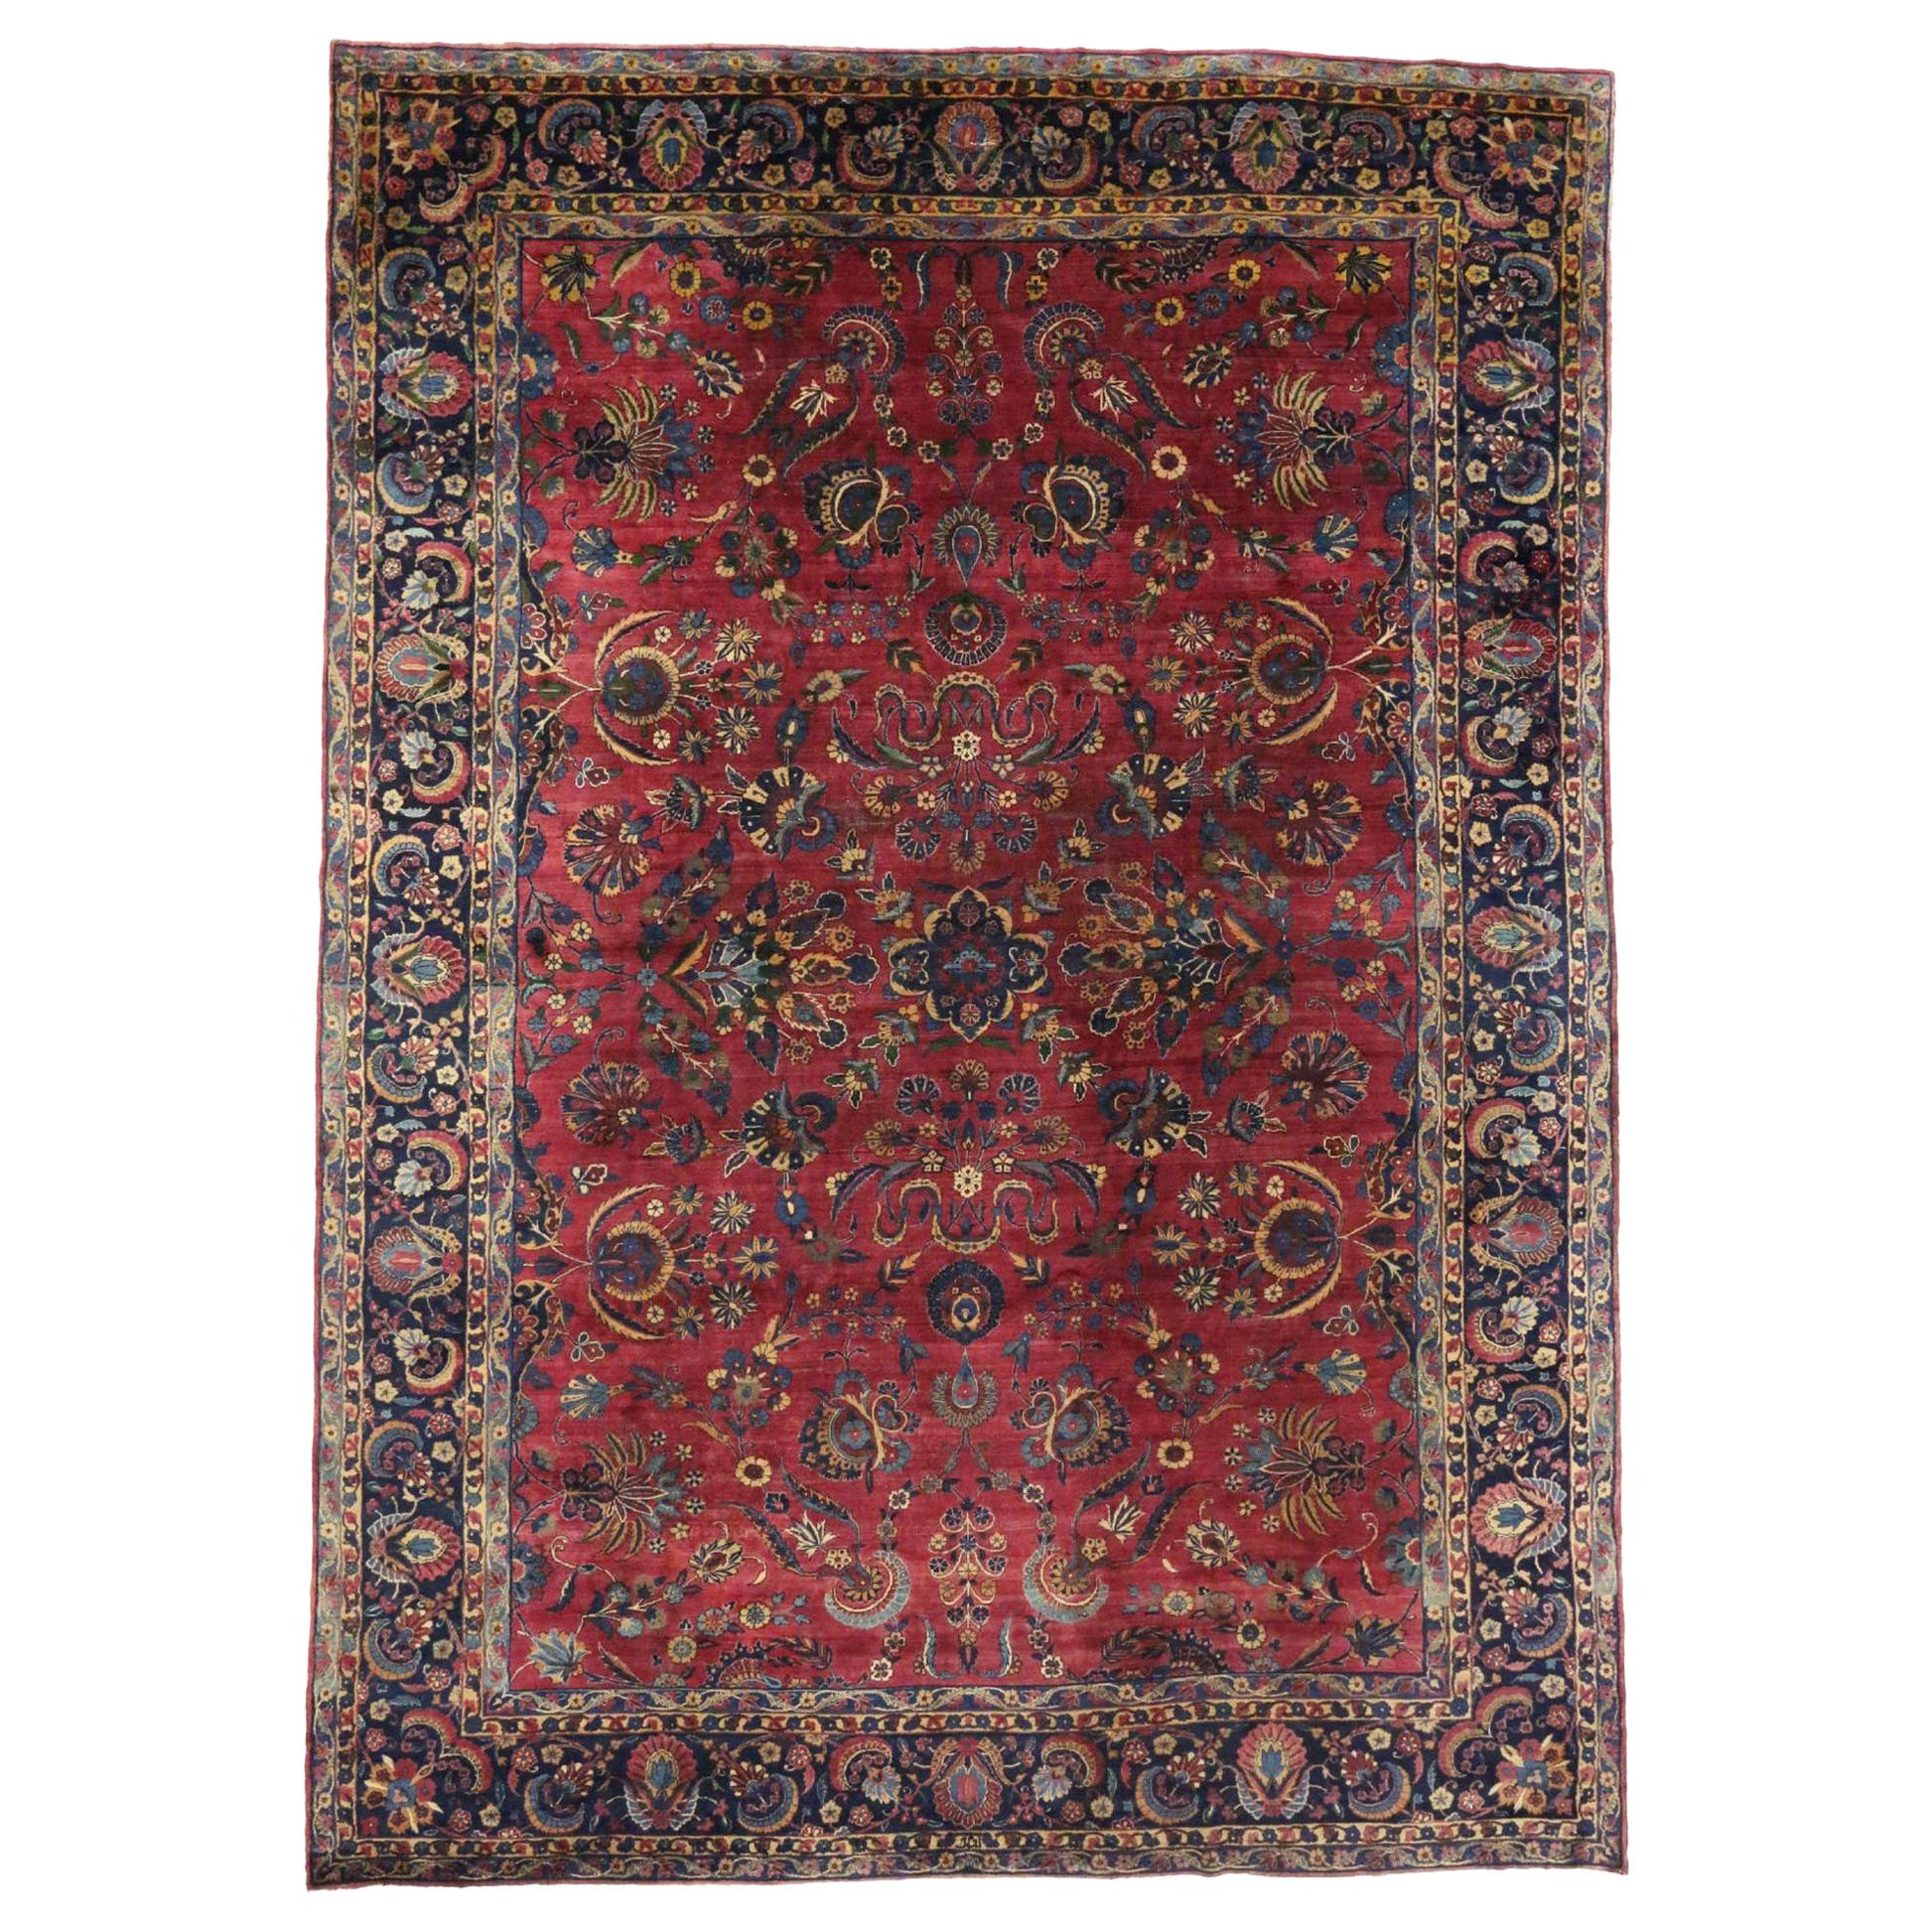 Antique Persian Yazd Area Rug with Luxe Victorian Style